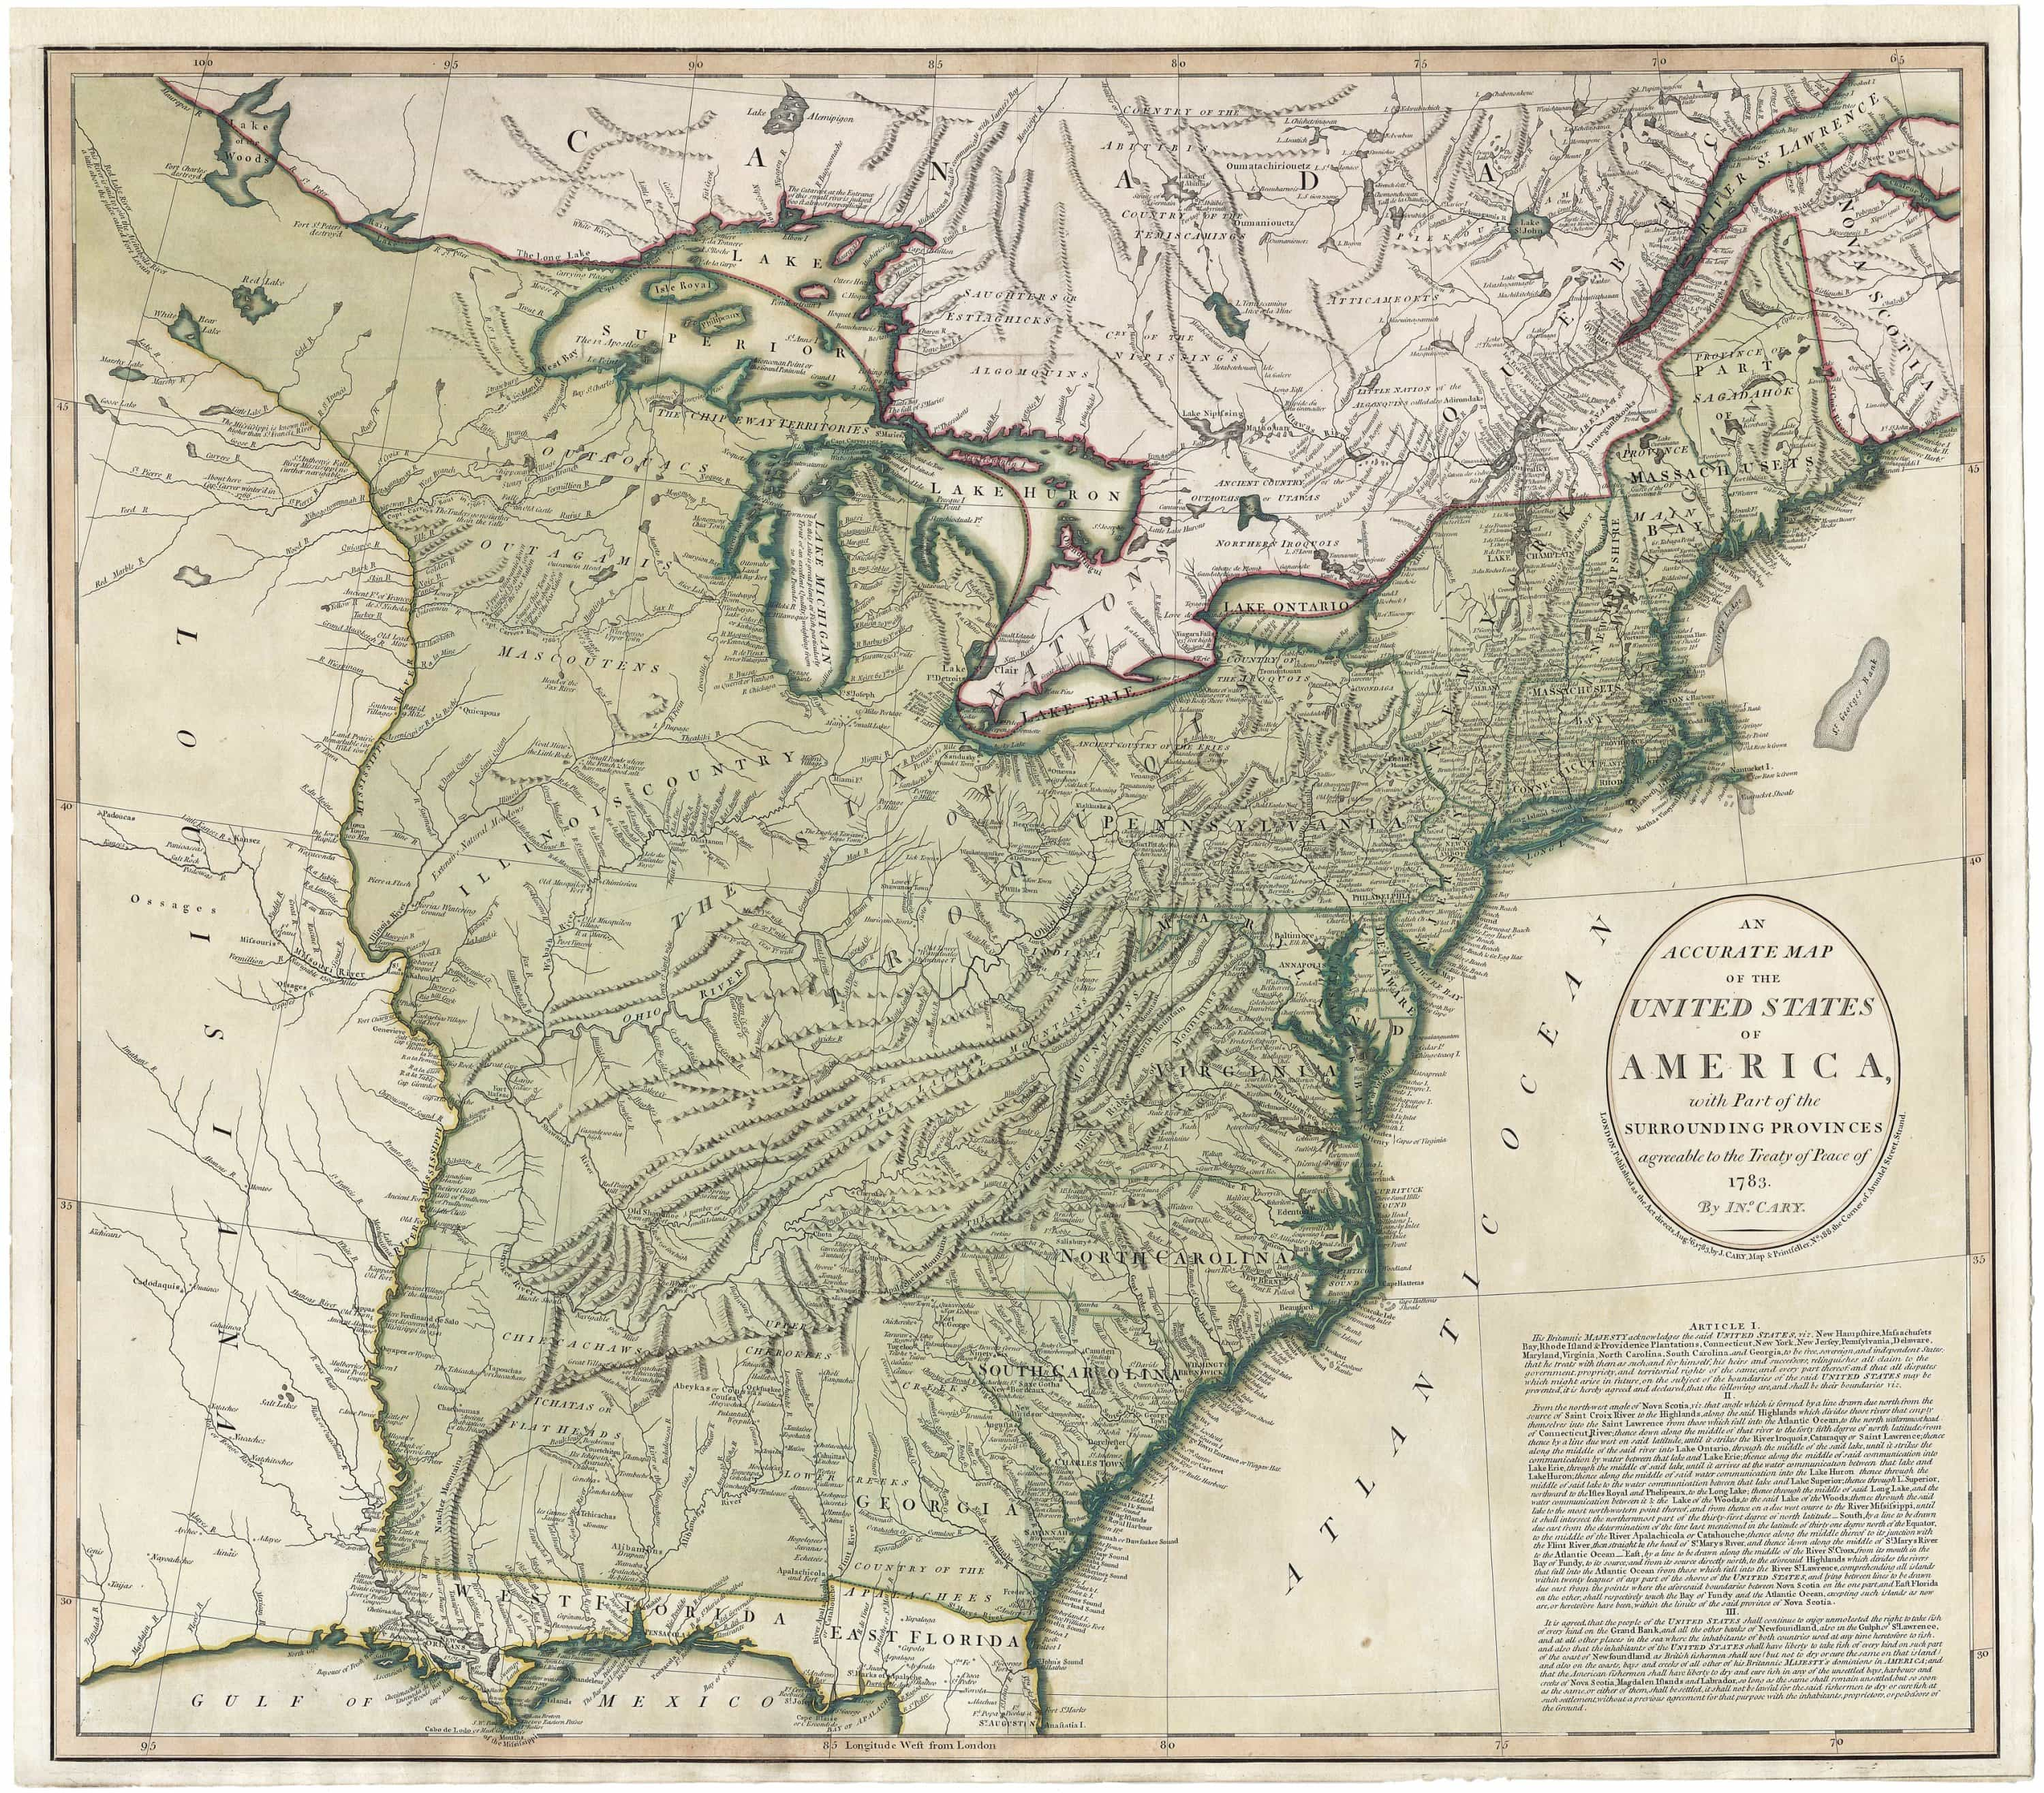 A rare, early and important map of the United States ...